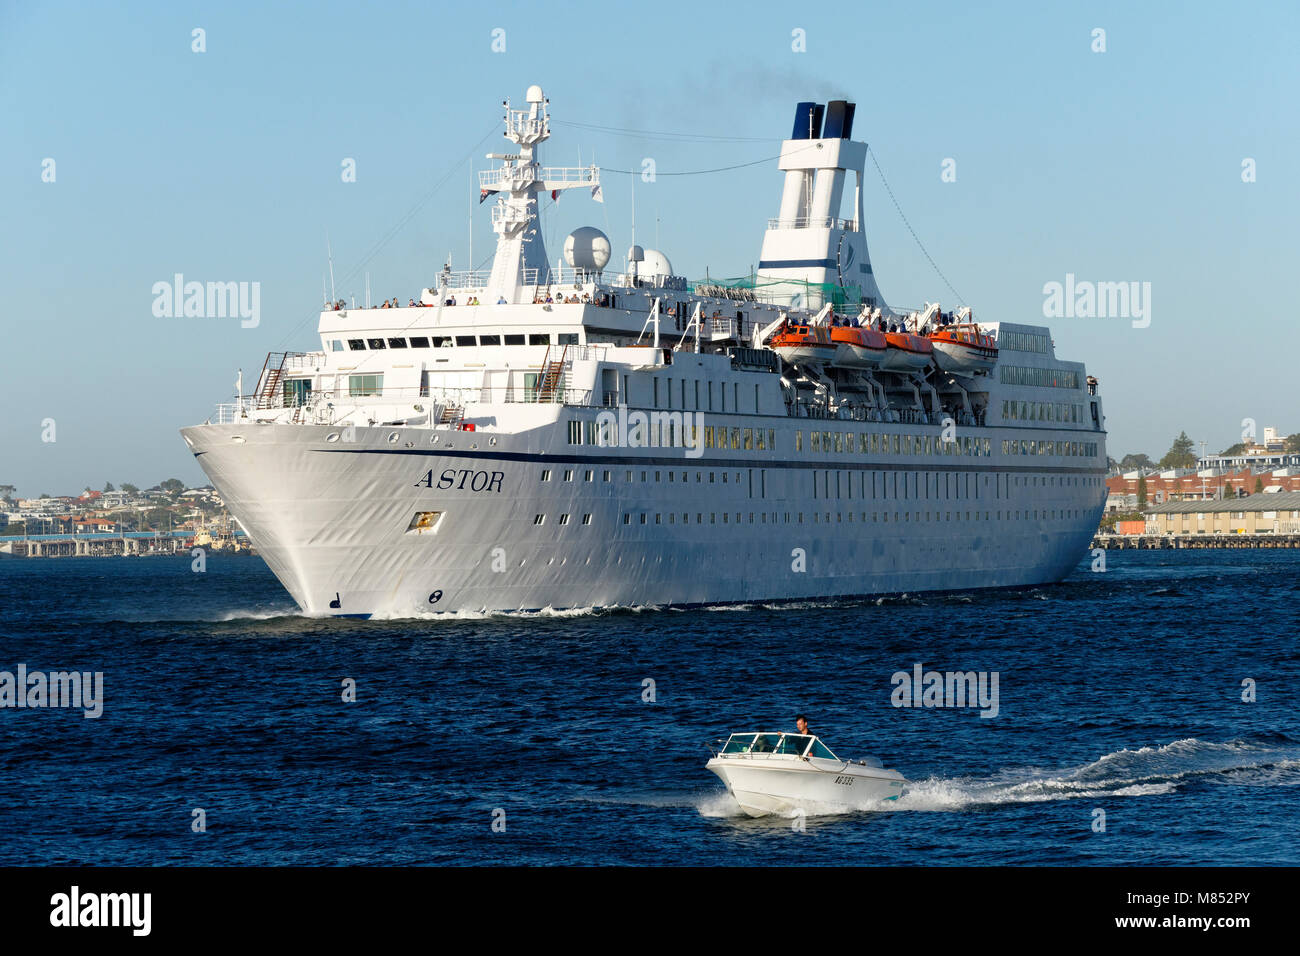 Cruise ship Astor departing from Fremantle, Western Australia - Stock Image